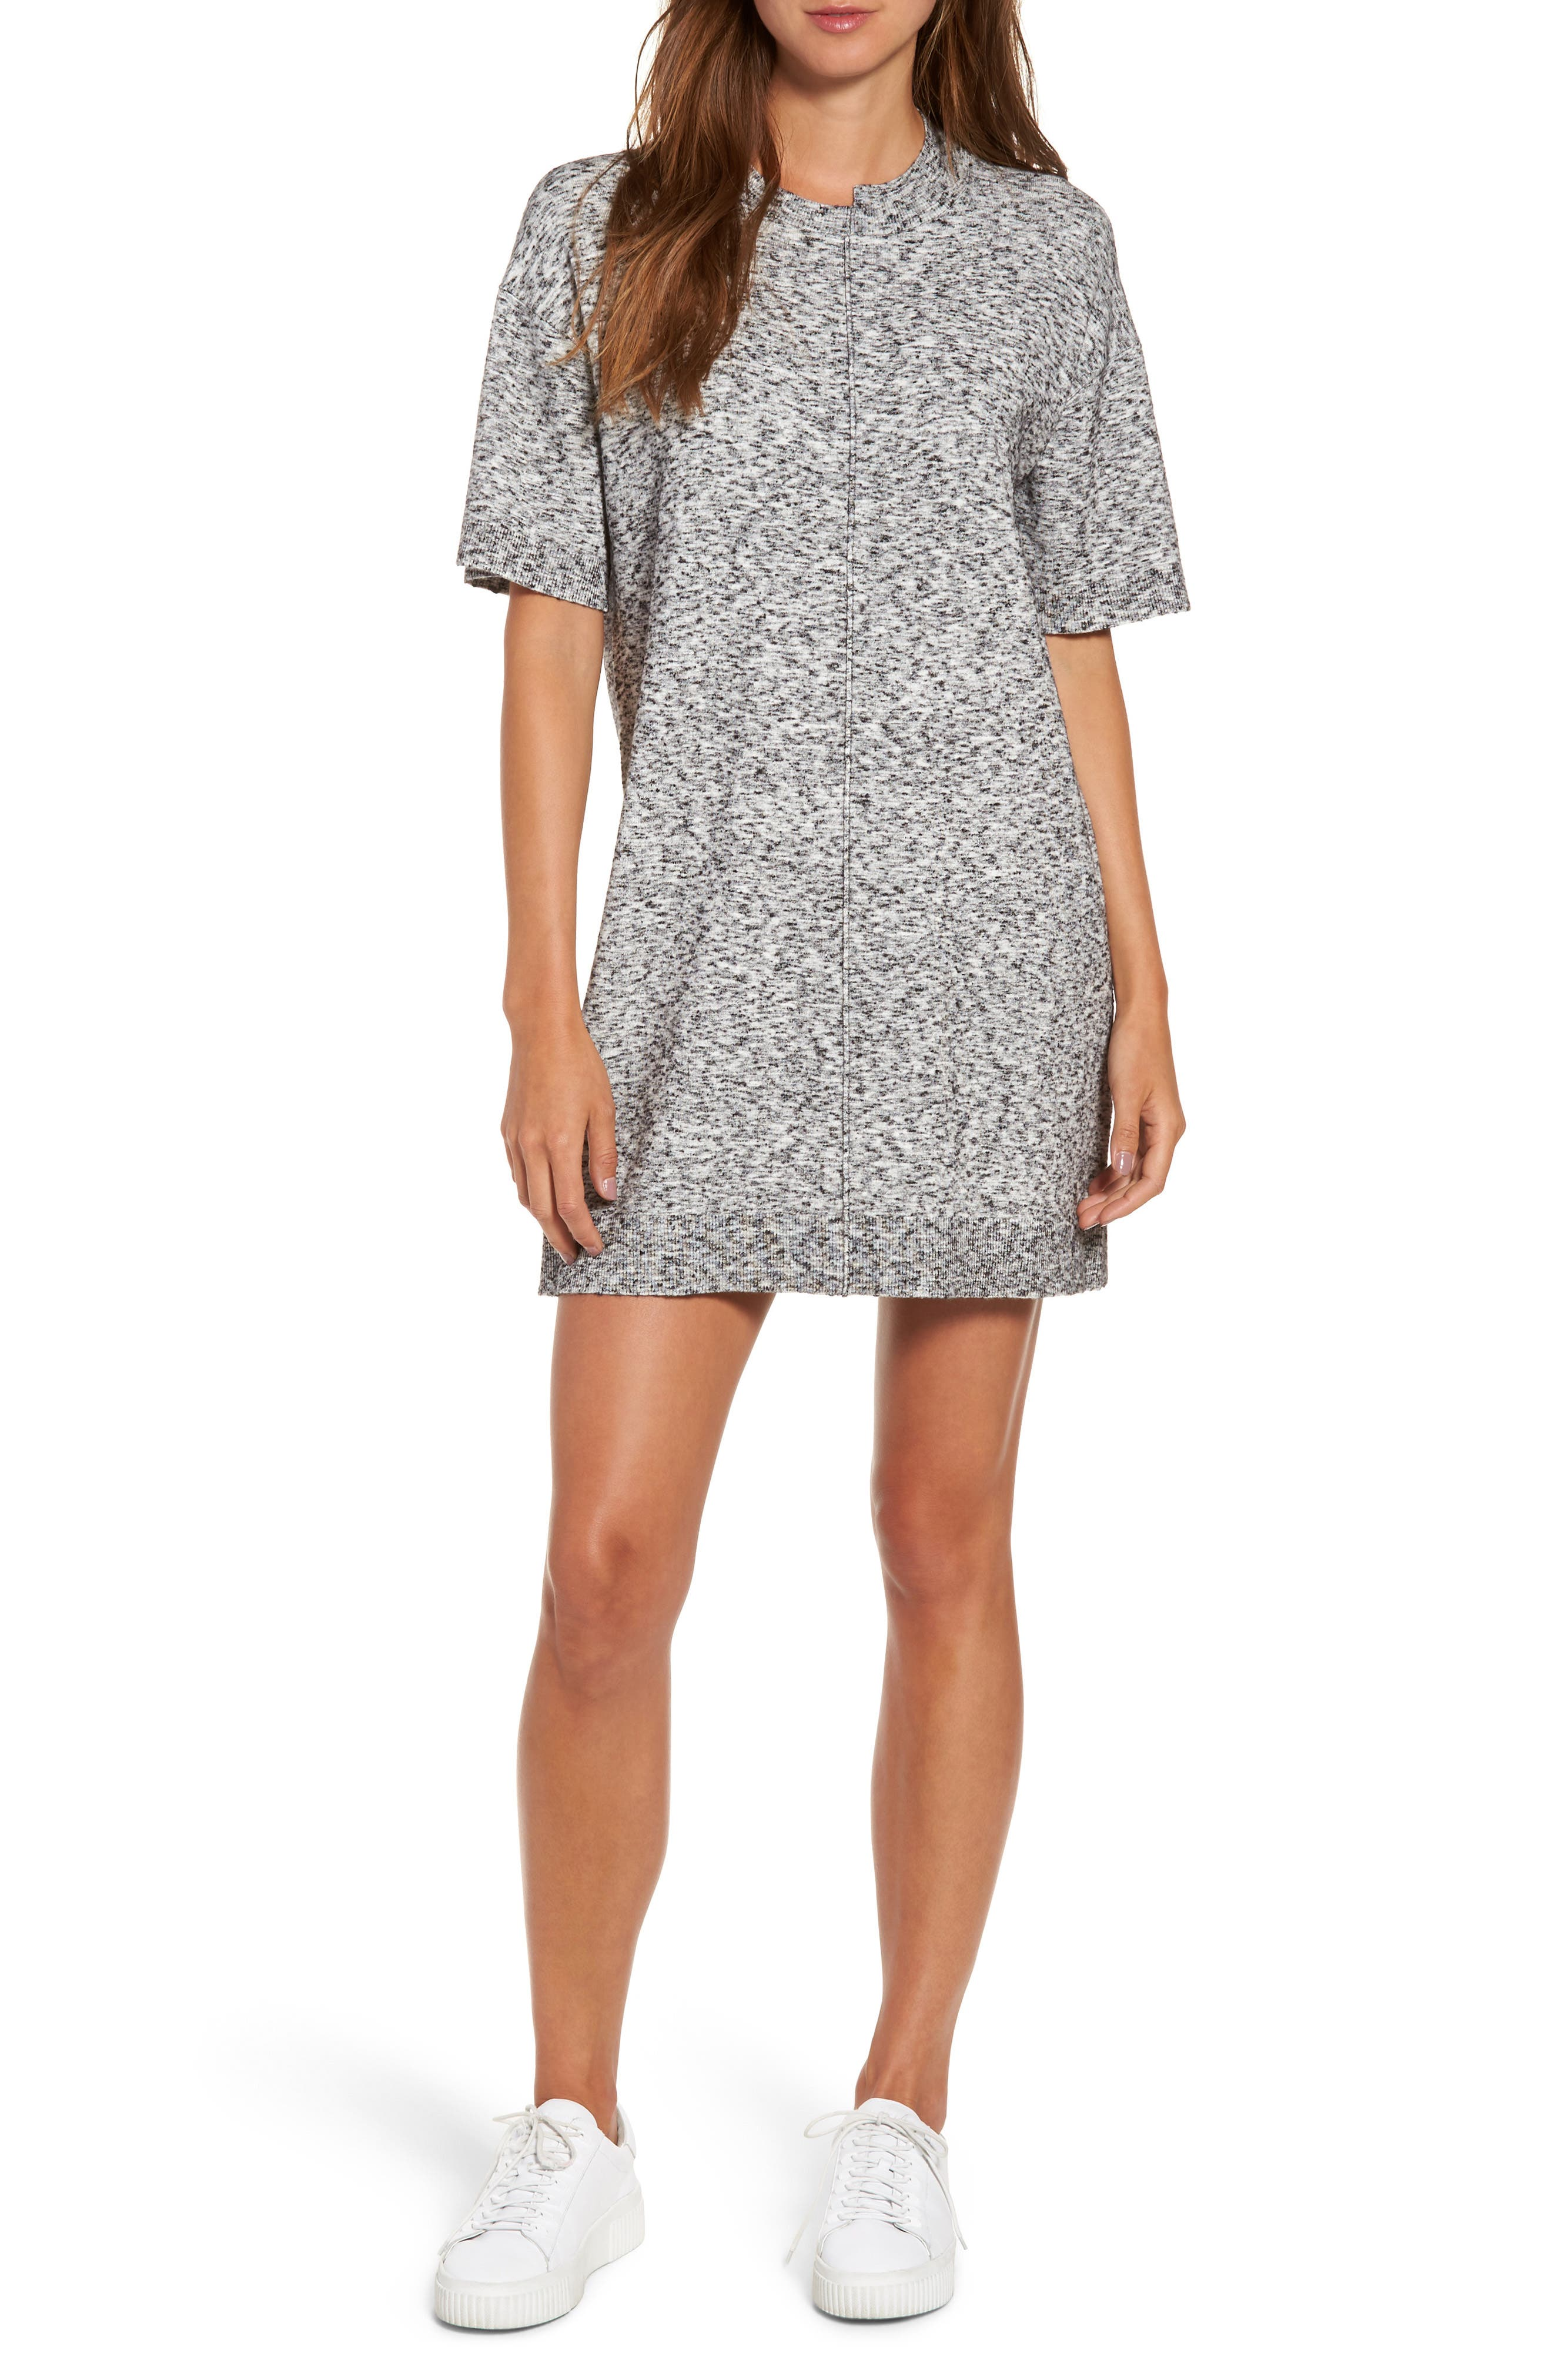 KENDALL + KYLIE Asymmetrical T-Shirt Dress